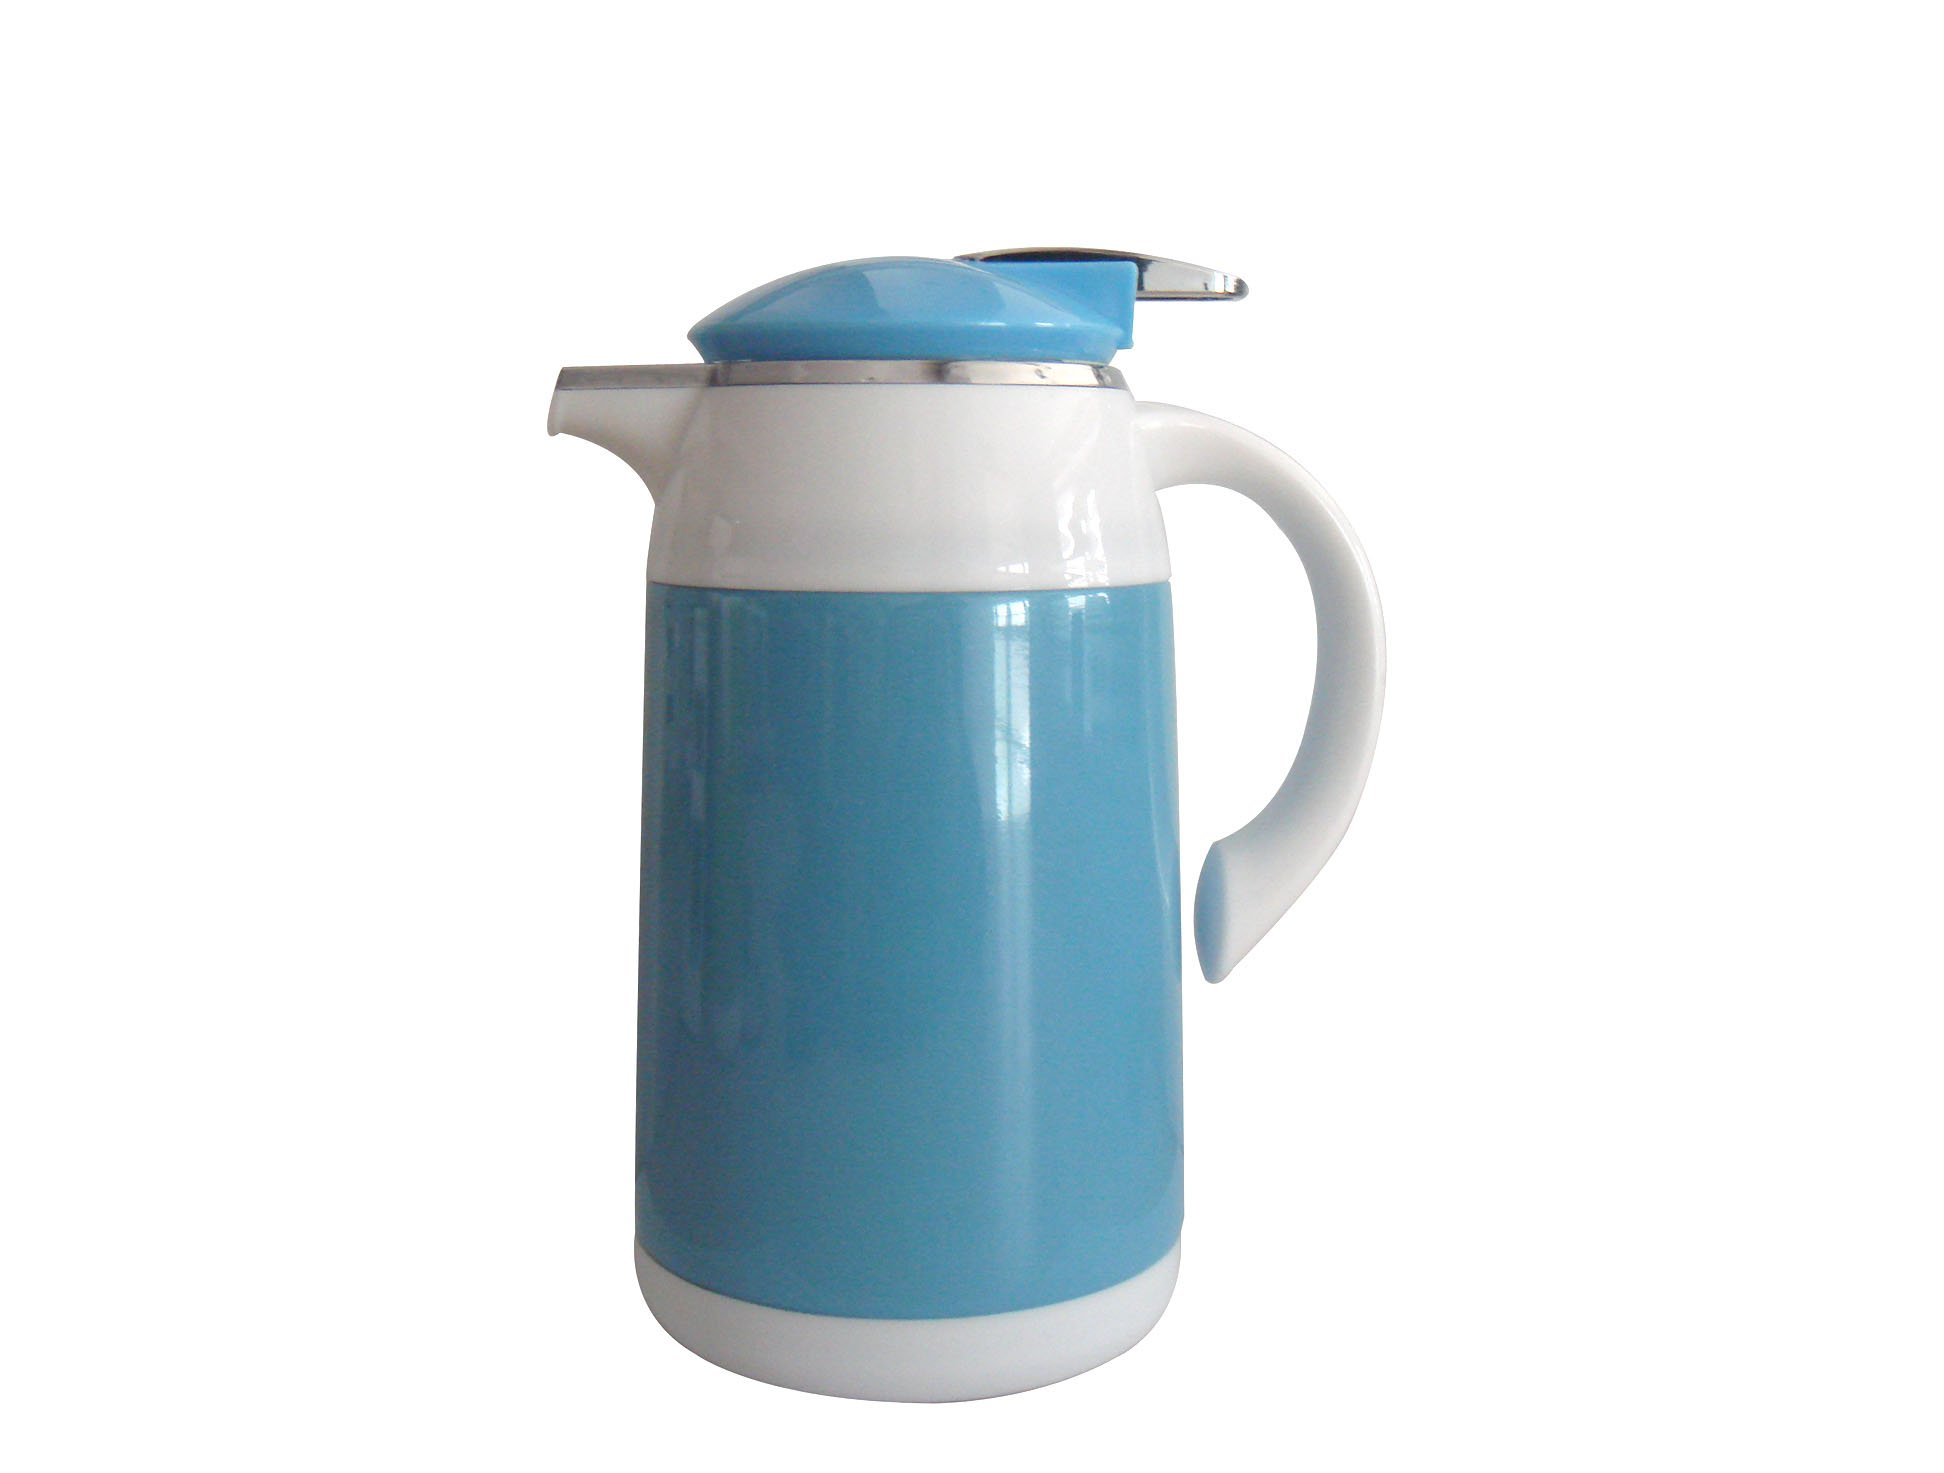 1.6L double walled stainless steel teapots